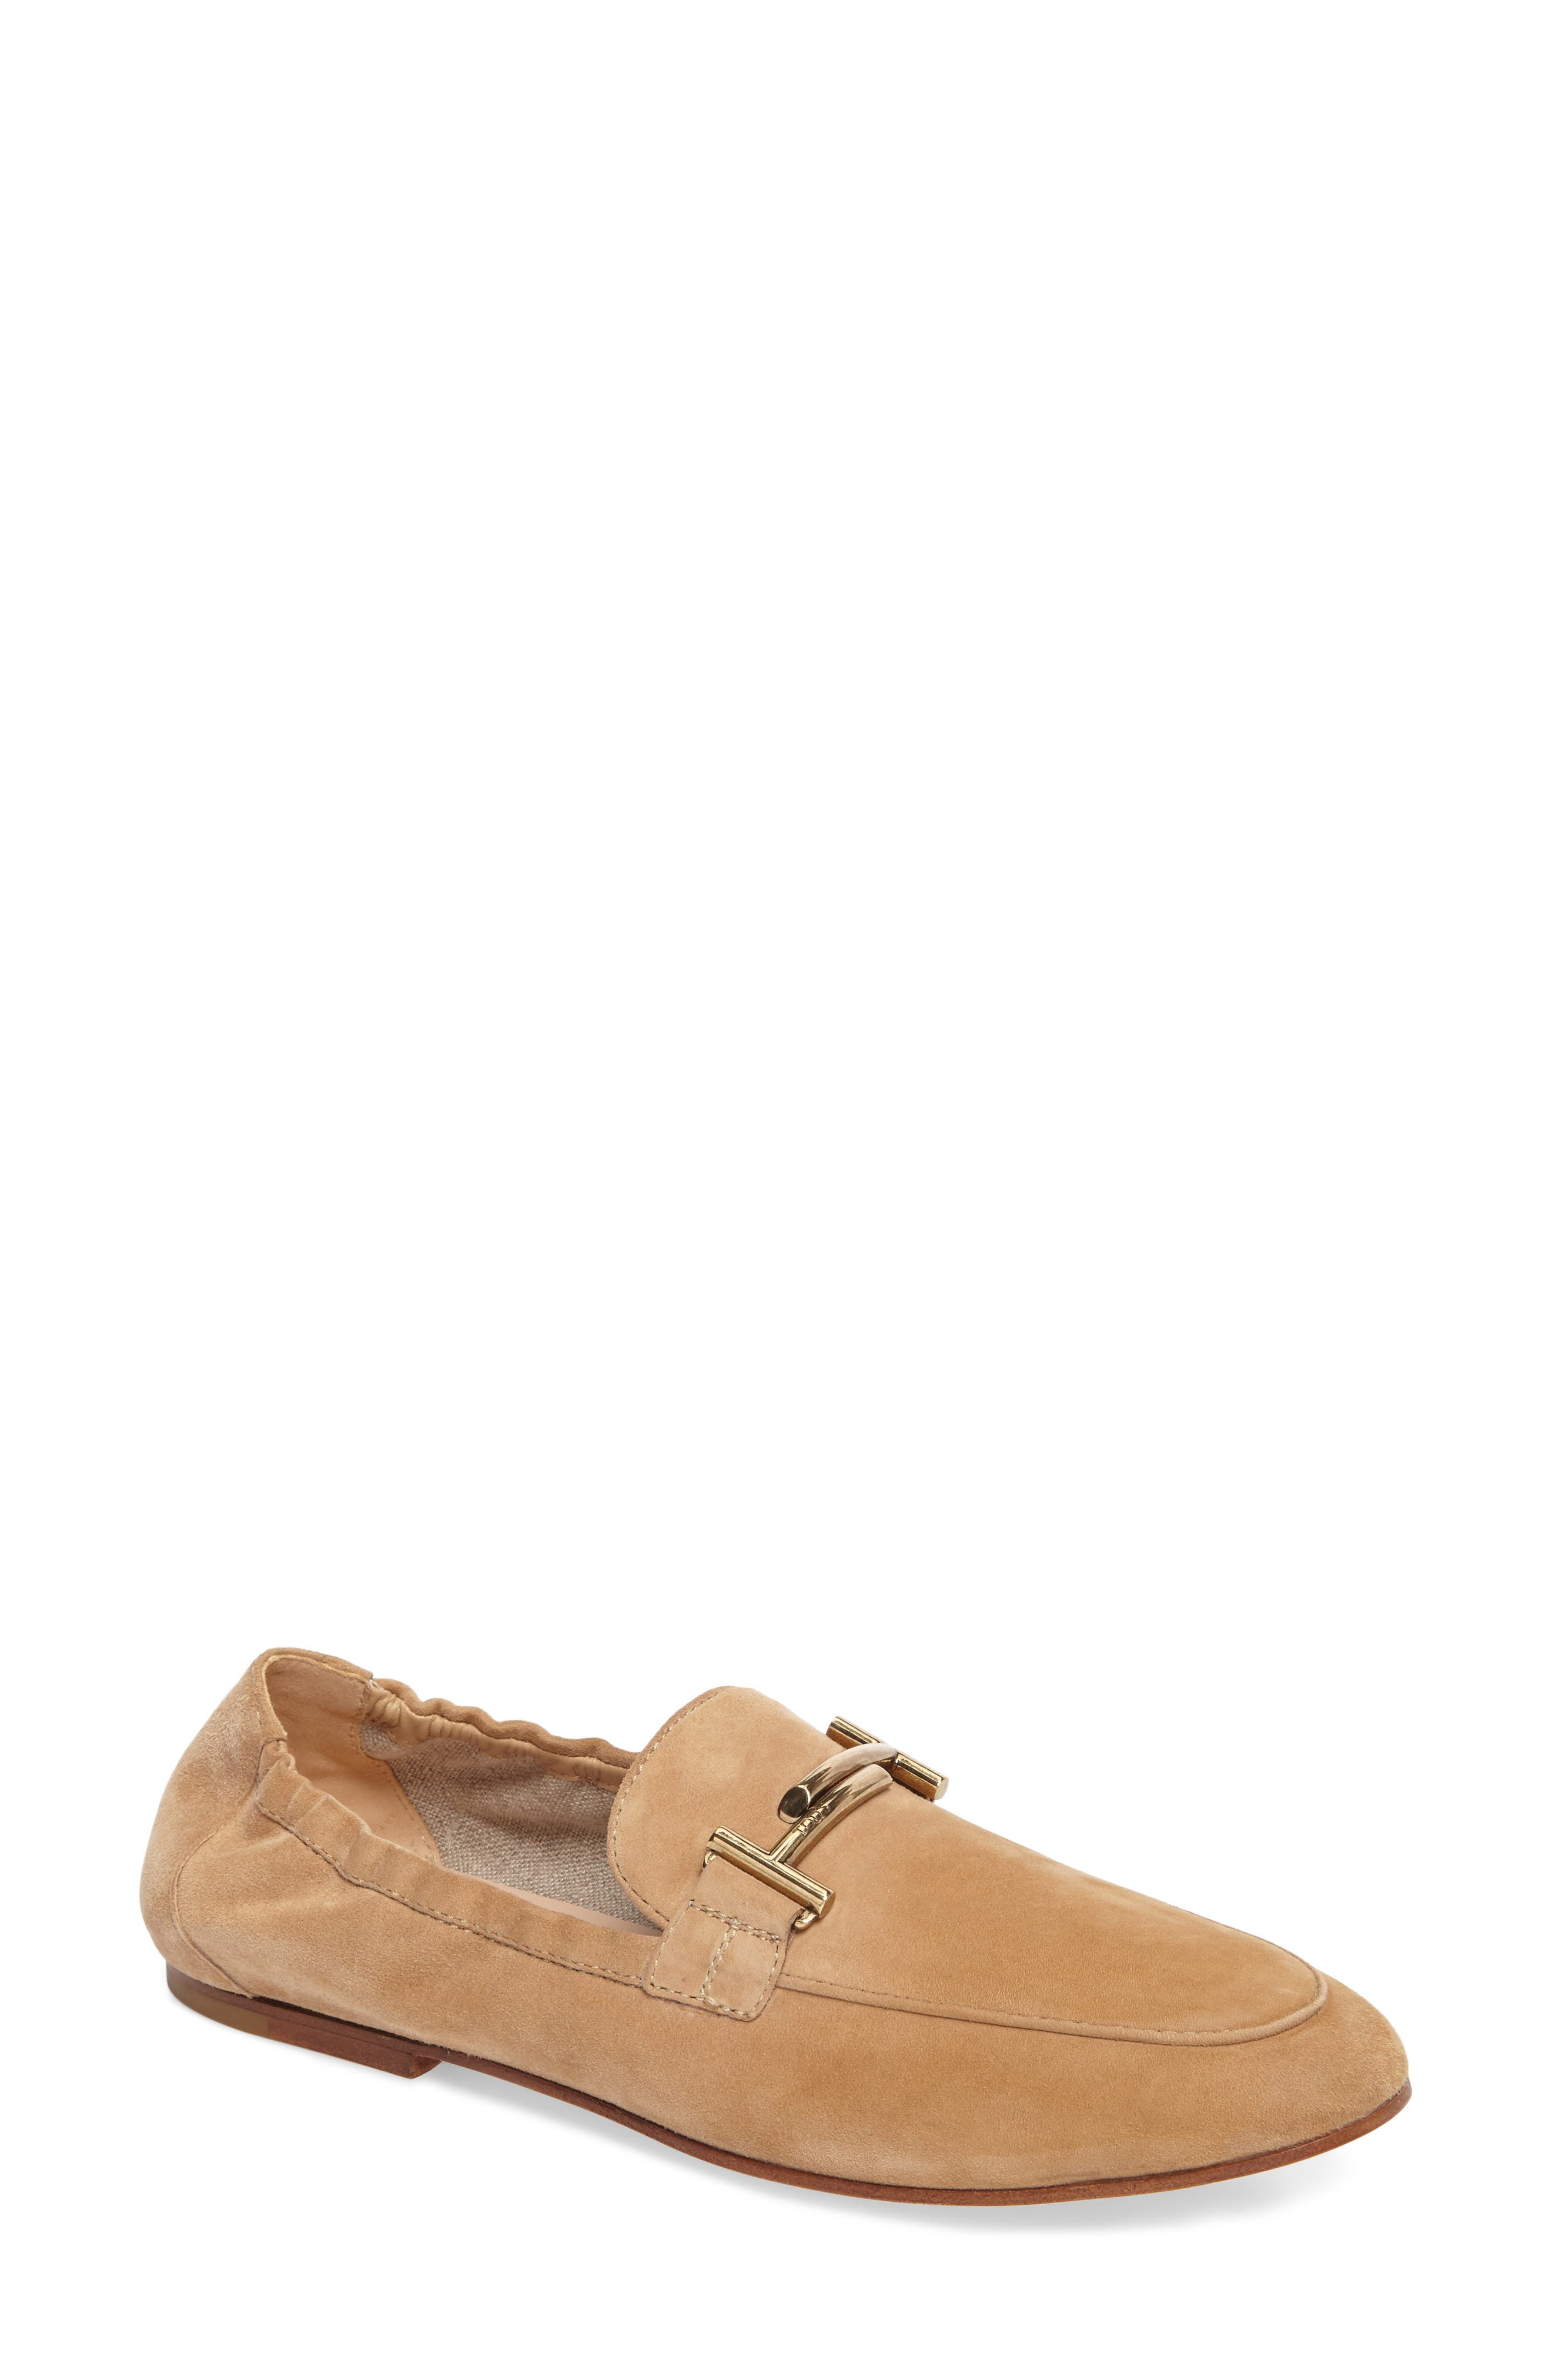 Double T Scrunch Loafer,                             Main thumbnail 2, color,